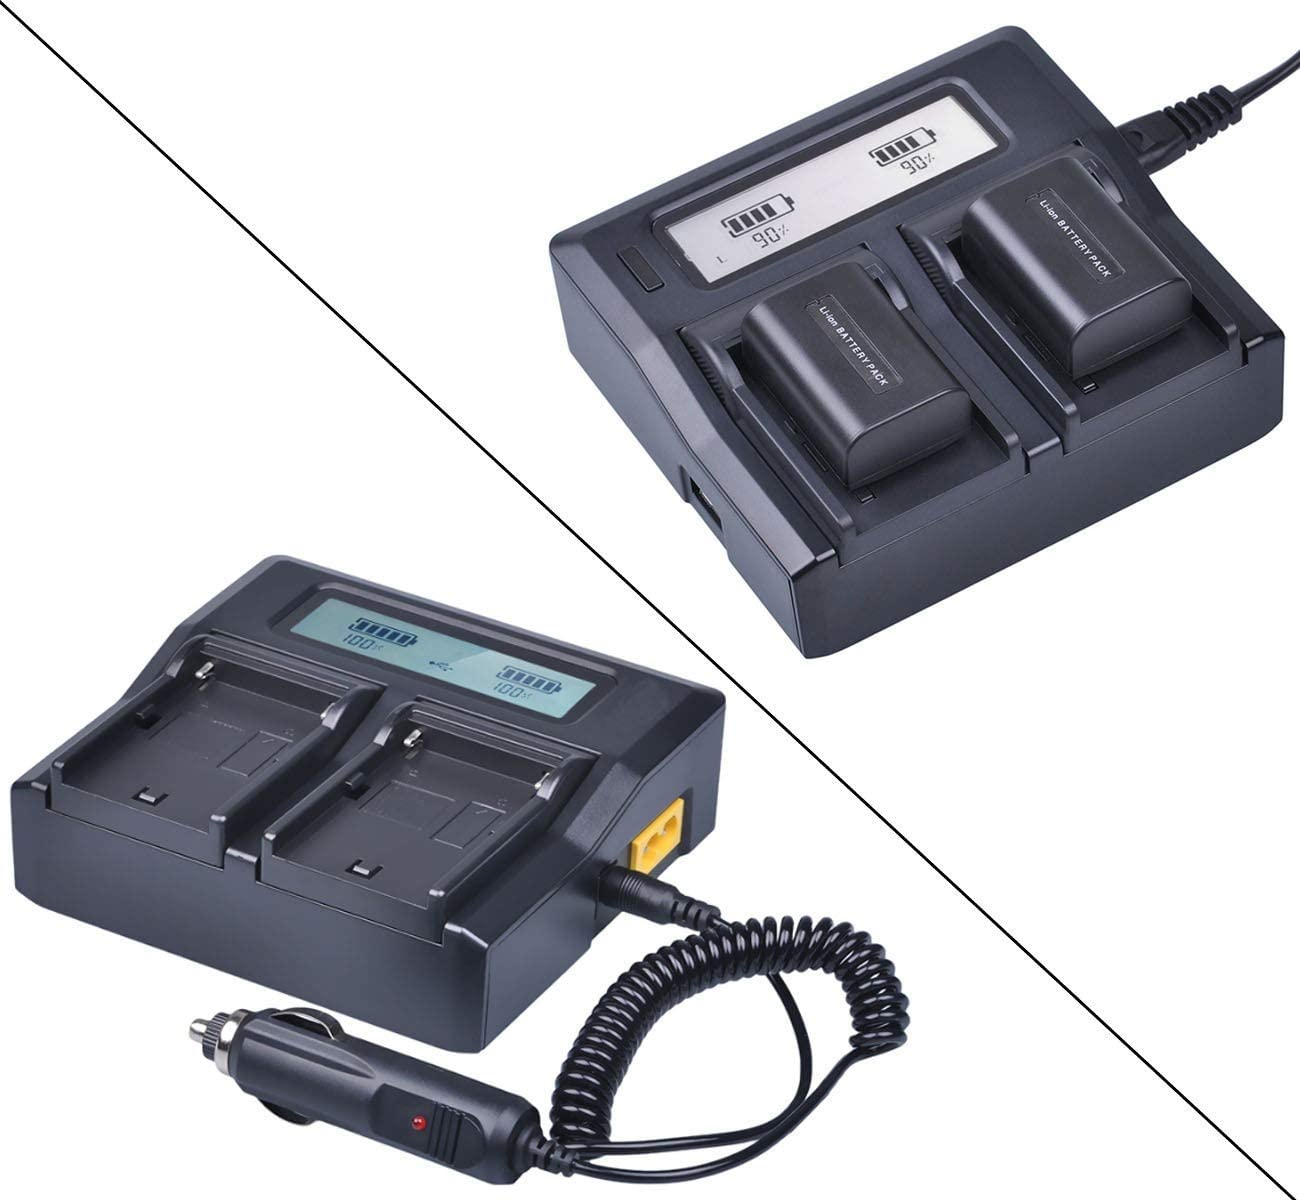 GZ-MG155U GZ-MG255U LCD Quick Battery Charger for JVC Everio GZ-MG150U GZ-MG275U GZ-MG335U GZ-MG465U GZ-MG175U GZ-MG555U GZ-MG435U GZ-MG365U GZ-MG575U Camcorder